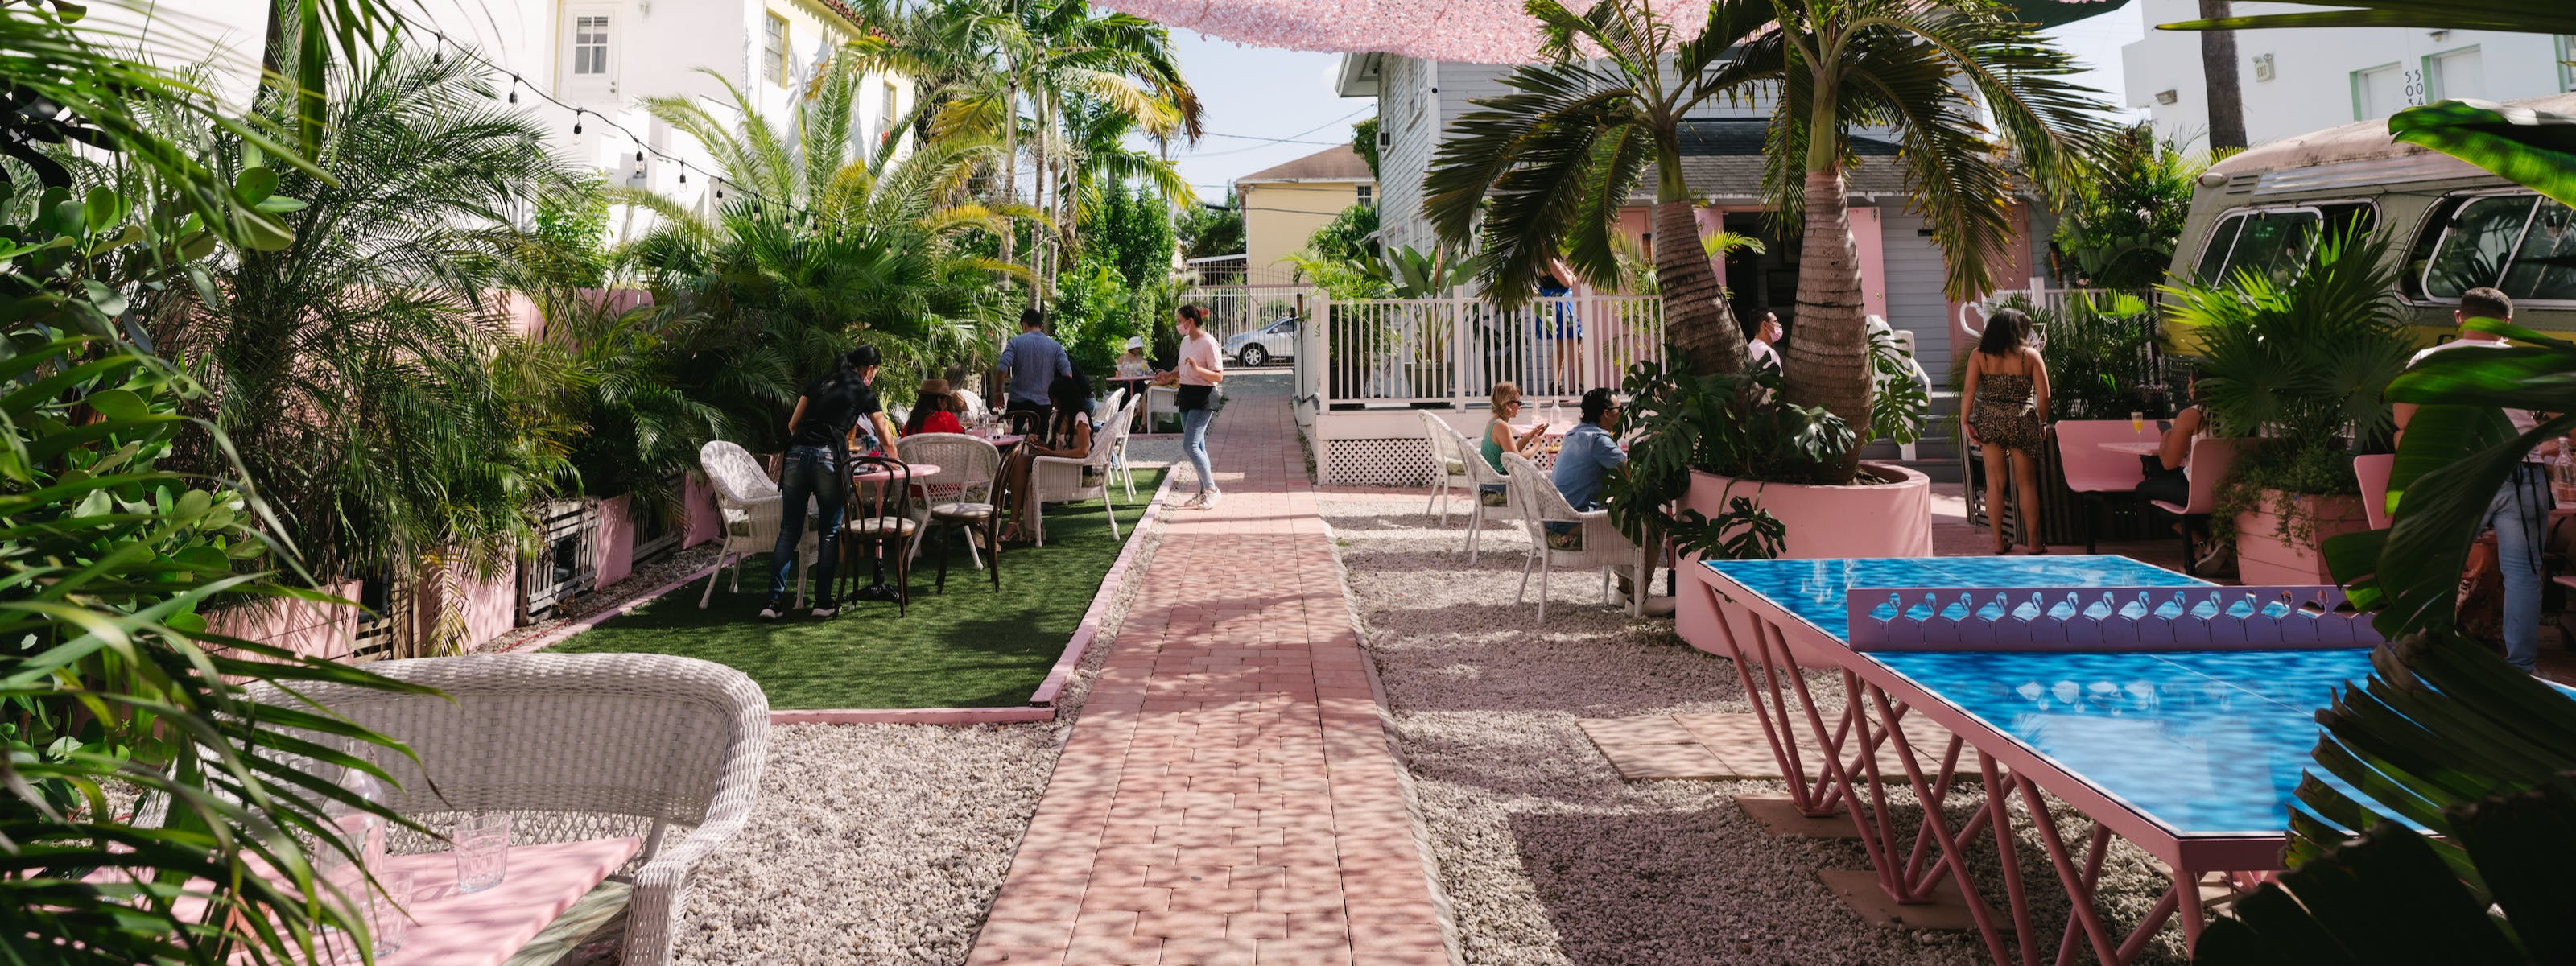 9 Bottomless Brunch Options In Miami - Miami - The Infatuation